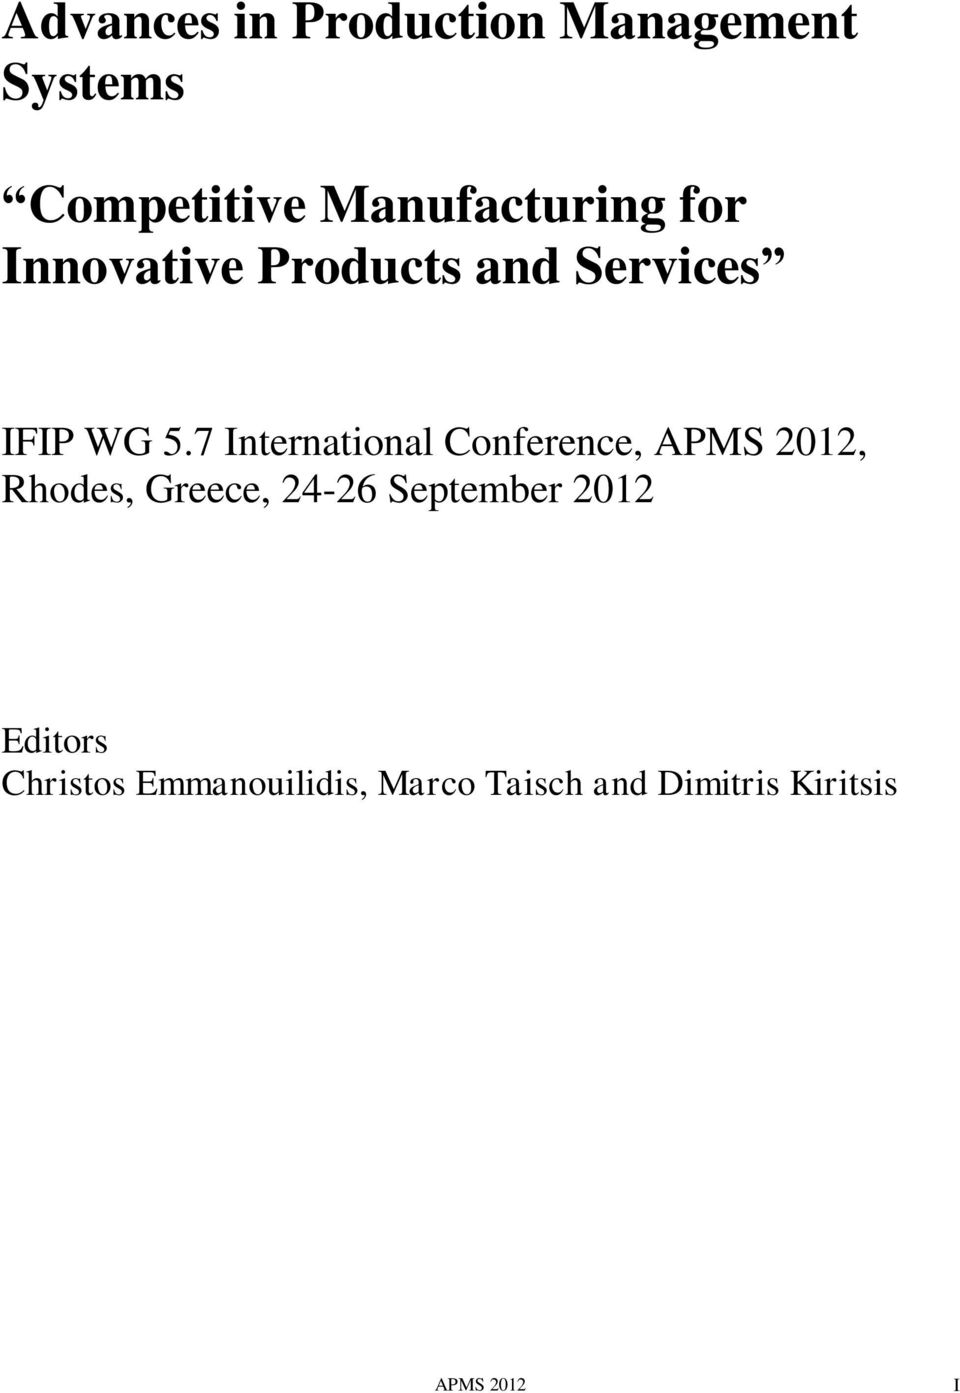 7 International Conference, APMS 2012, Rhodes, Greece, 24-26